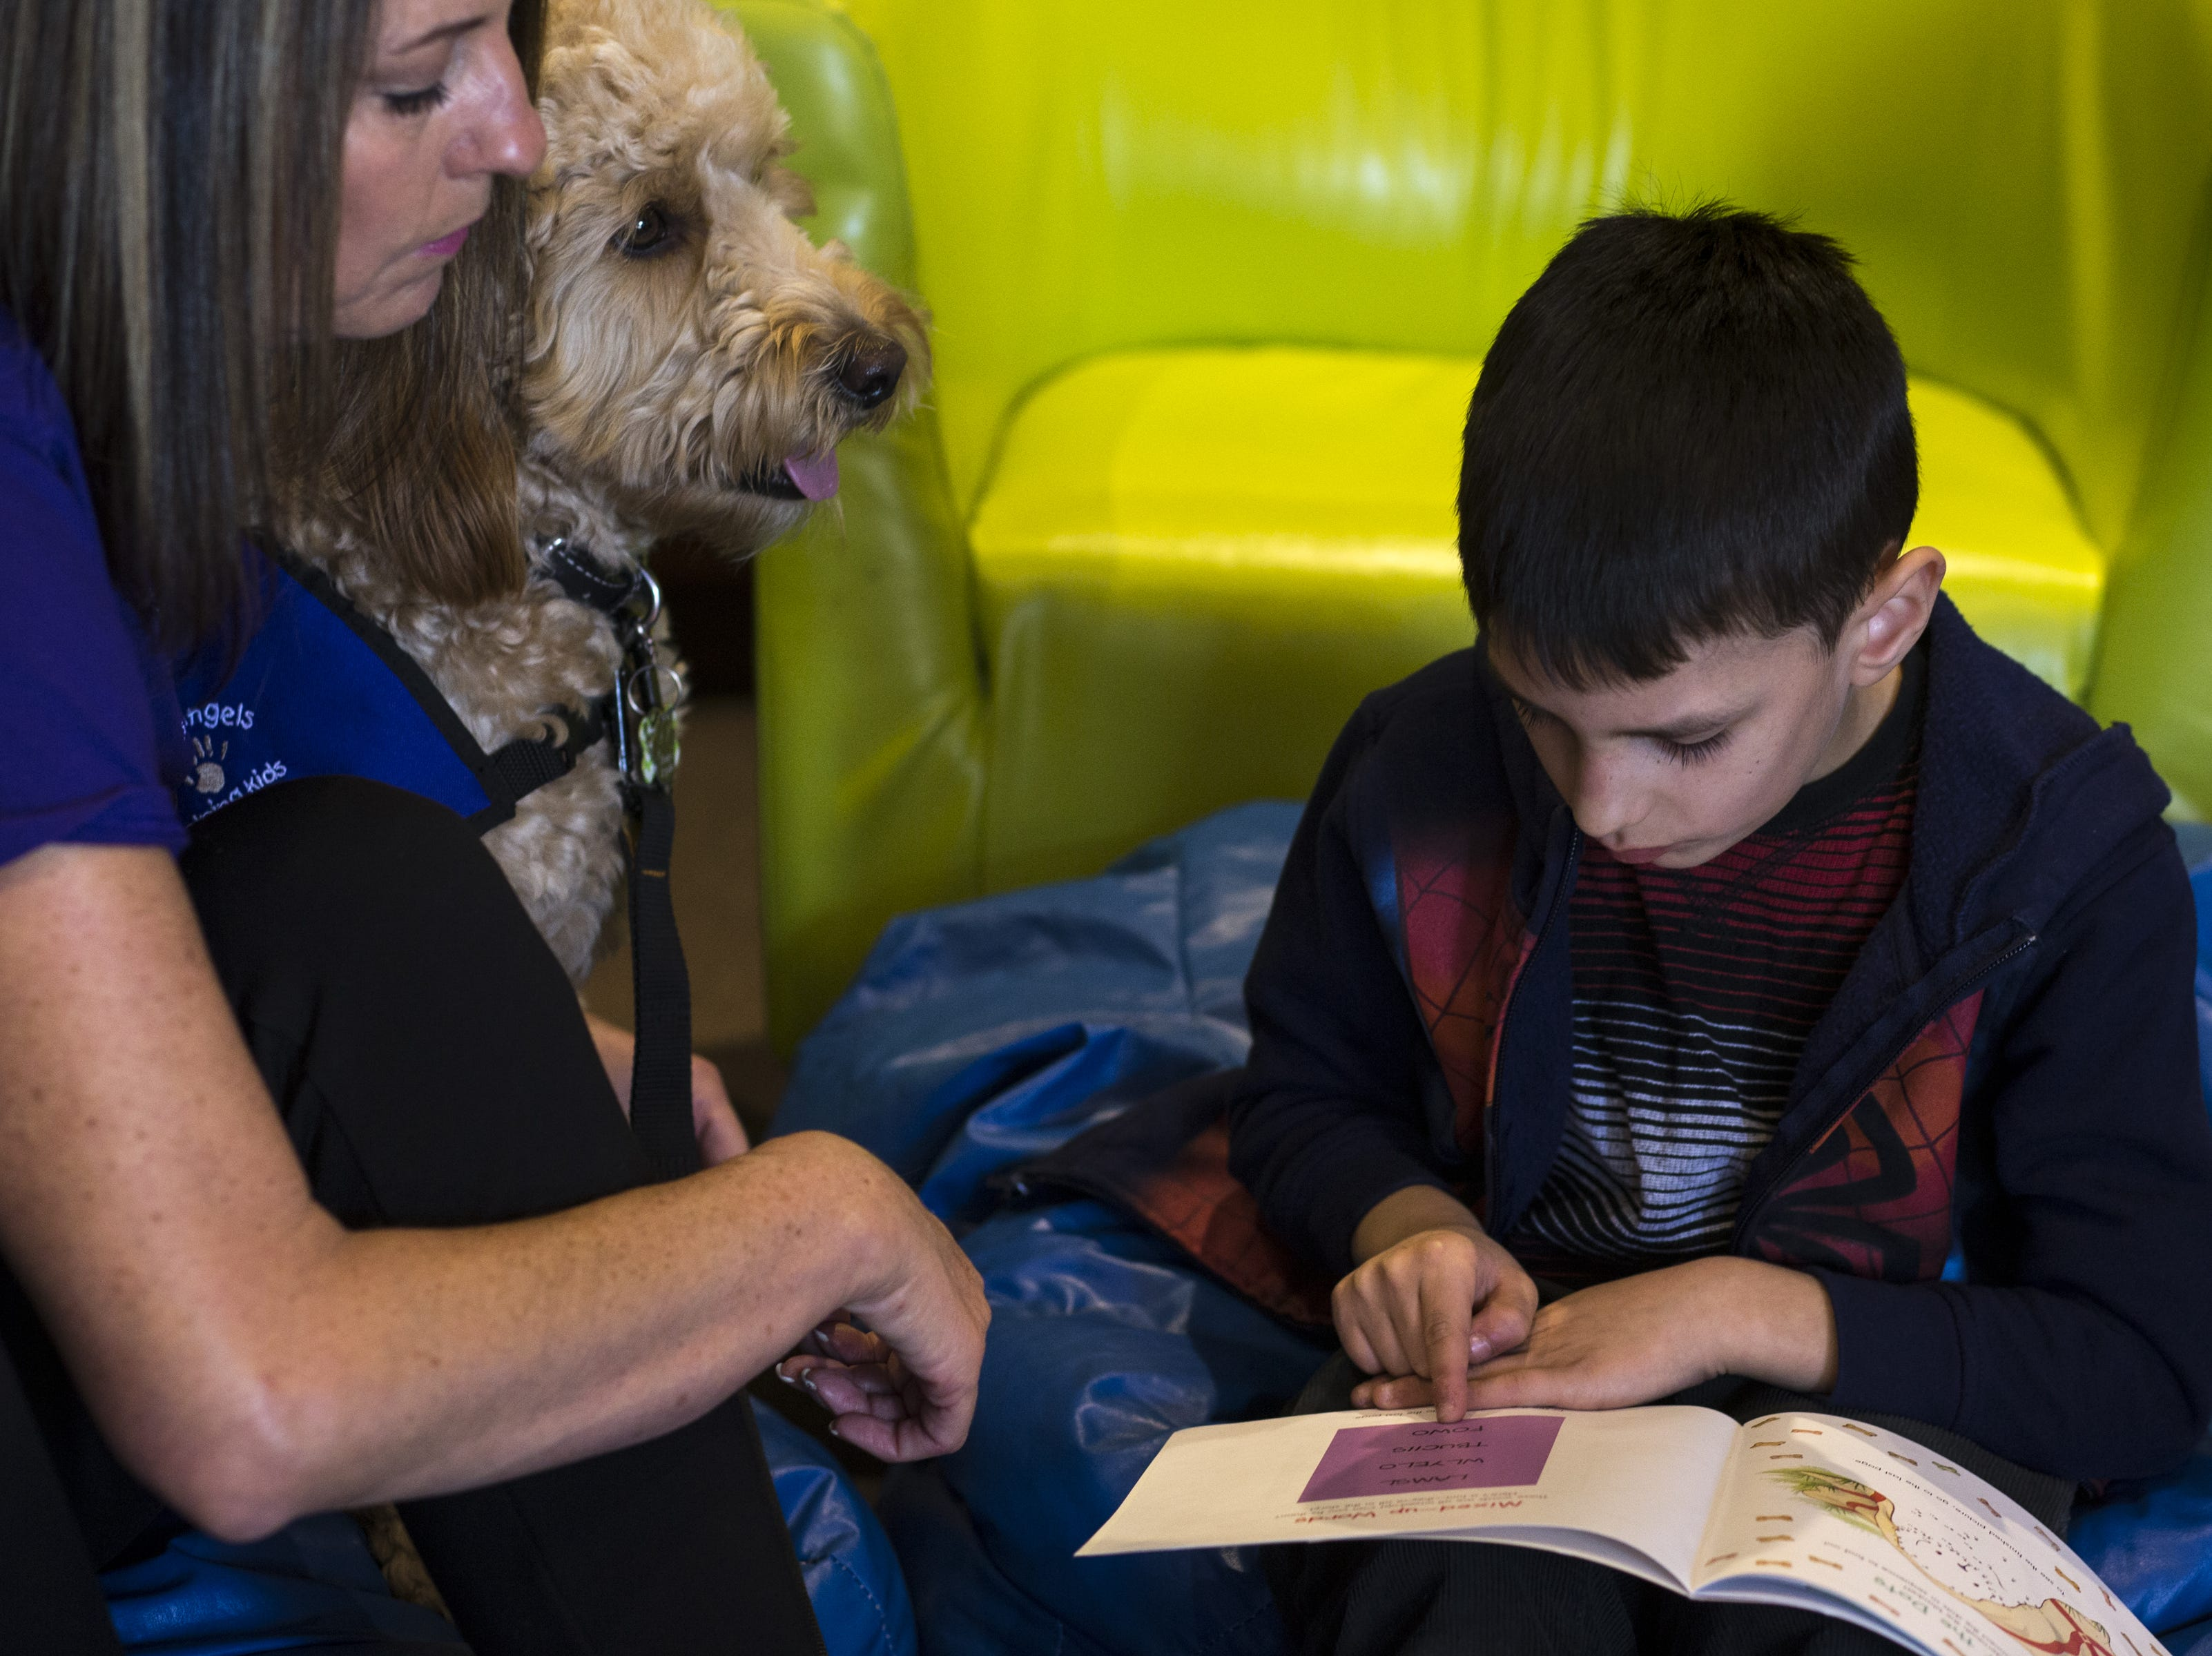 Zane reads with Caymus and Michelle Newlin of Gabriel's Angels, Jan. 7, 2019, at Aurora Day School in Peoria.